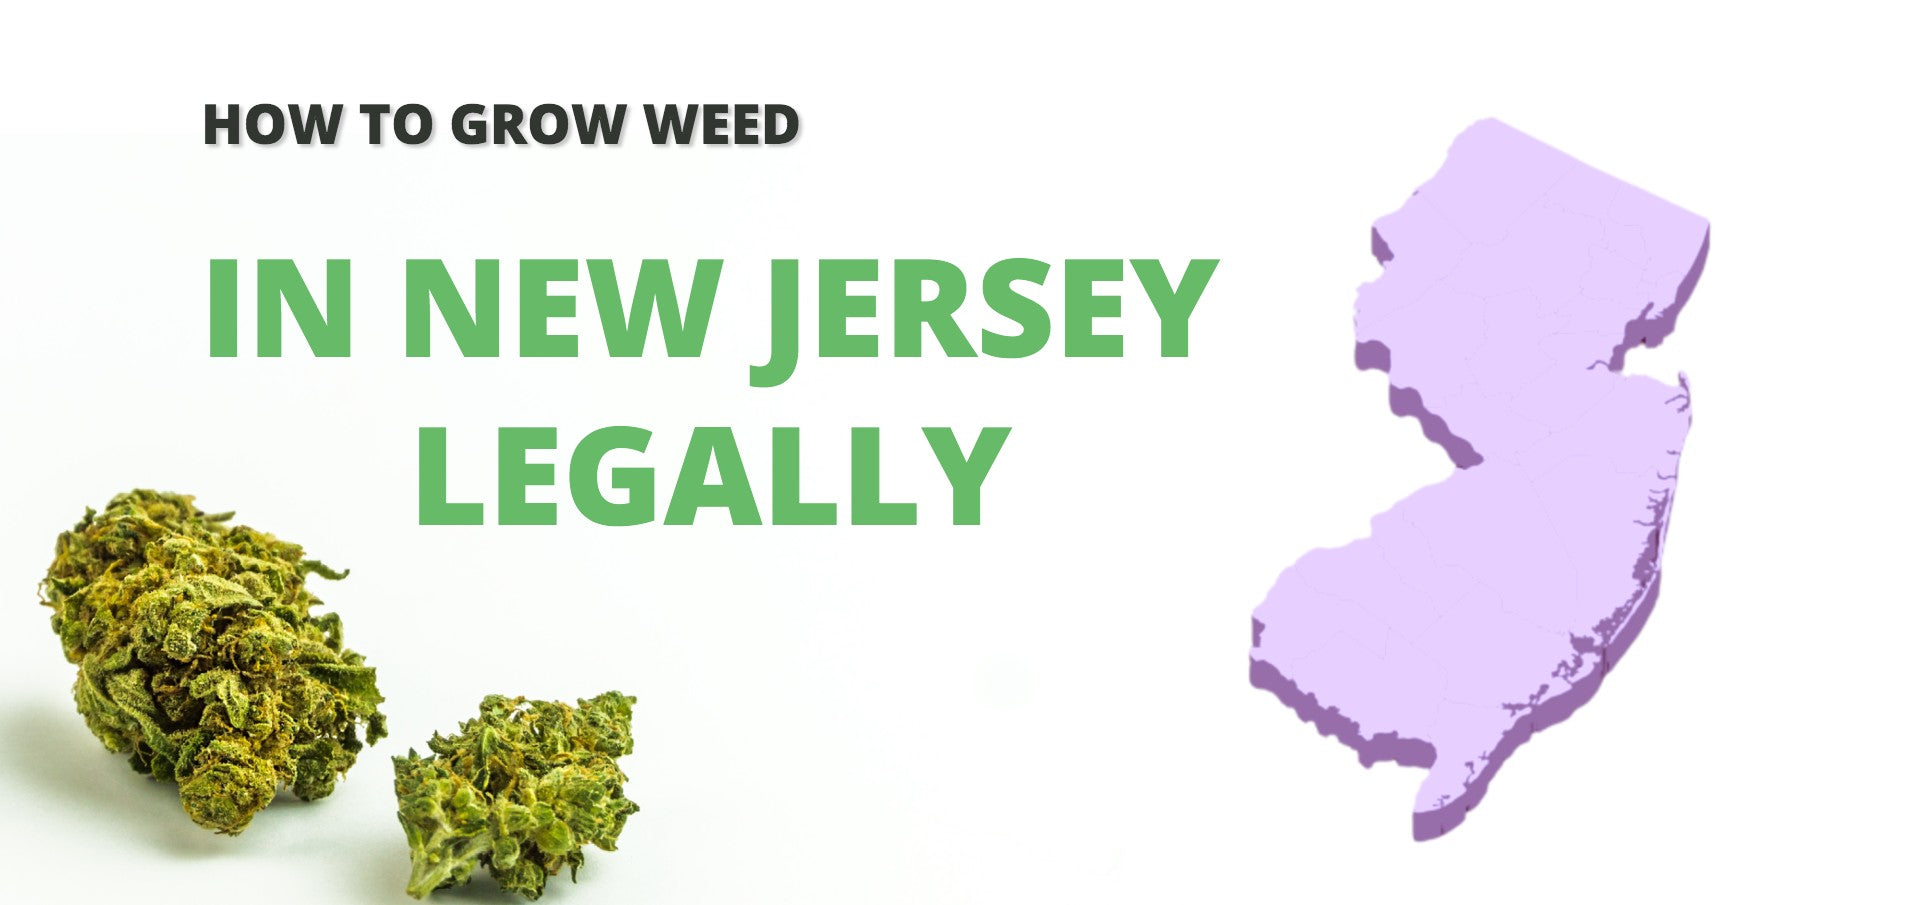 Grow weed legally in New jersey